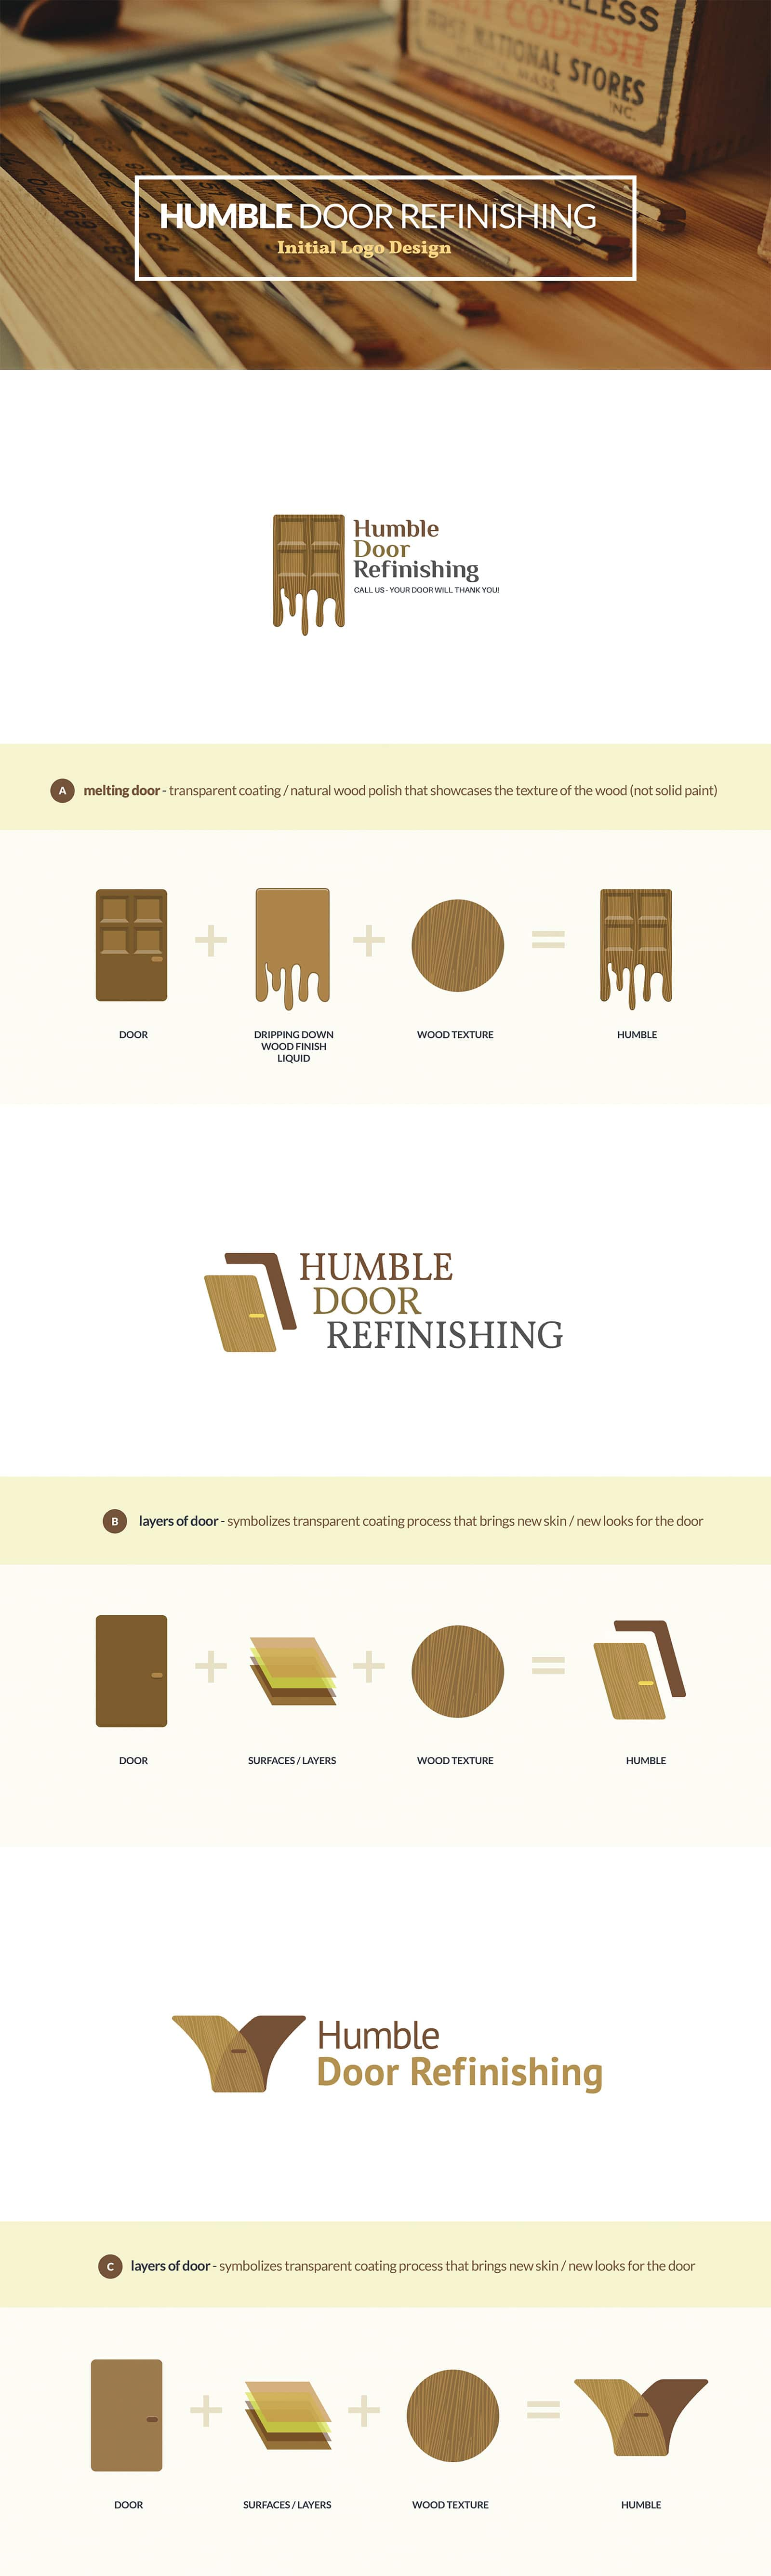 branding-humble_door_refinishing-propose